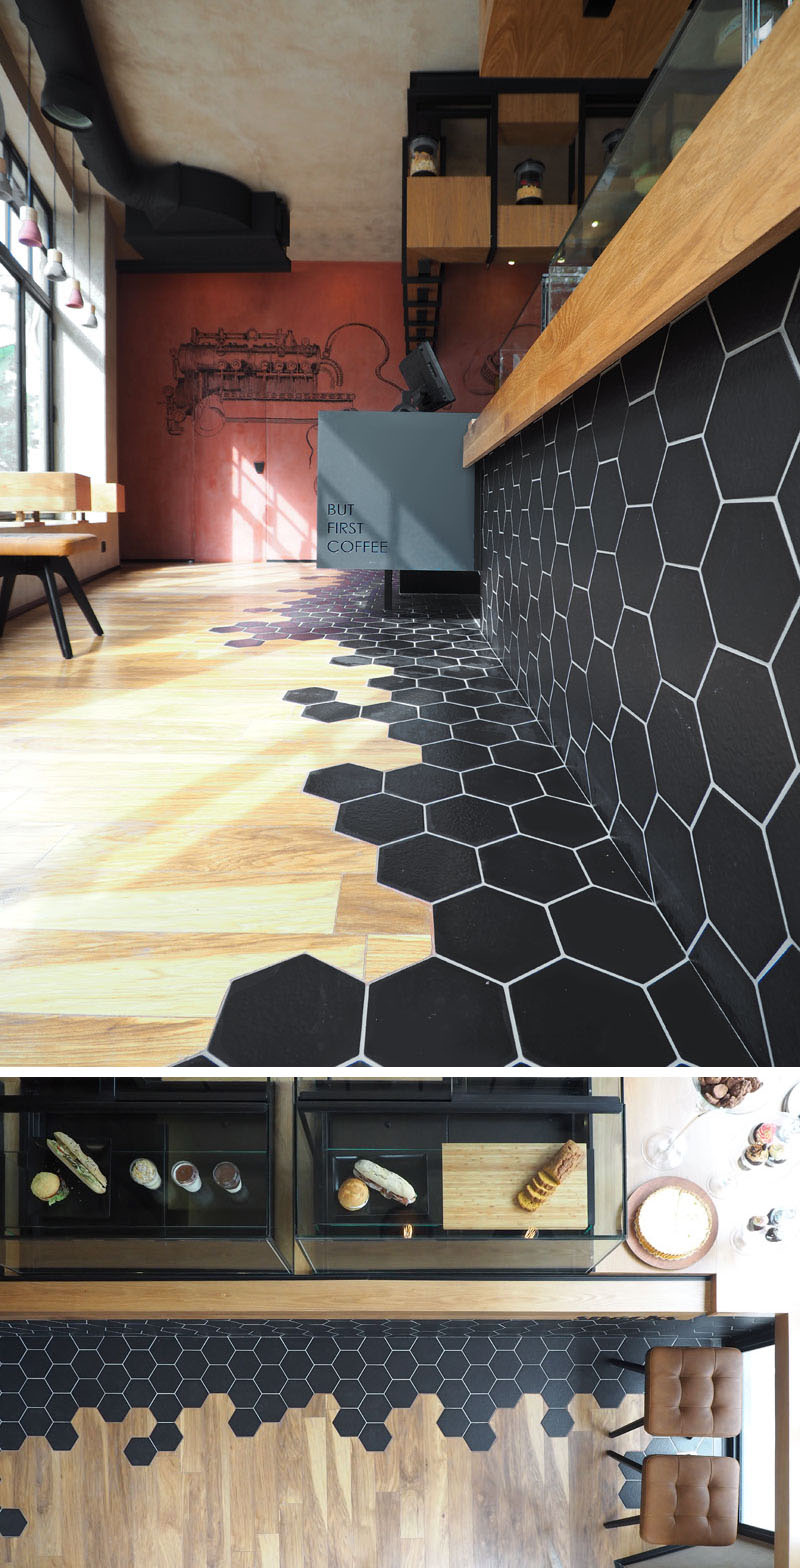 hexagon-tile-wood-flooring-061216-941-06